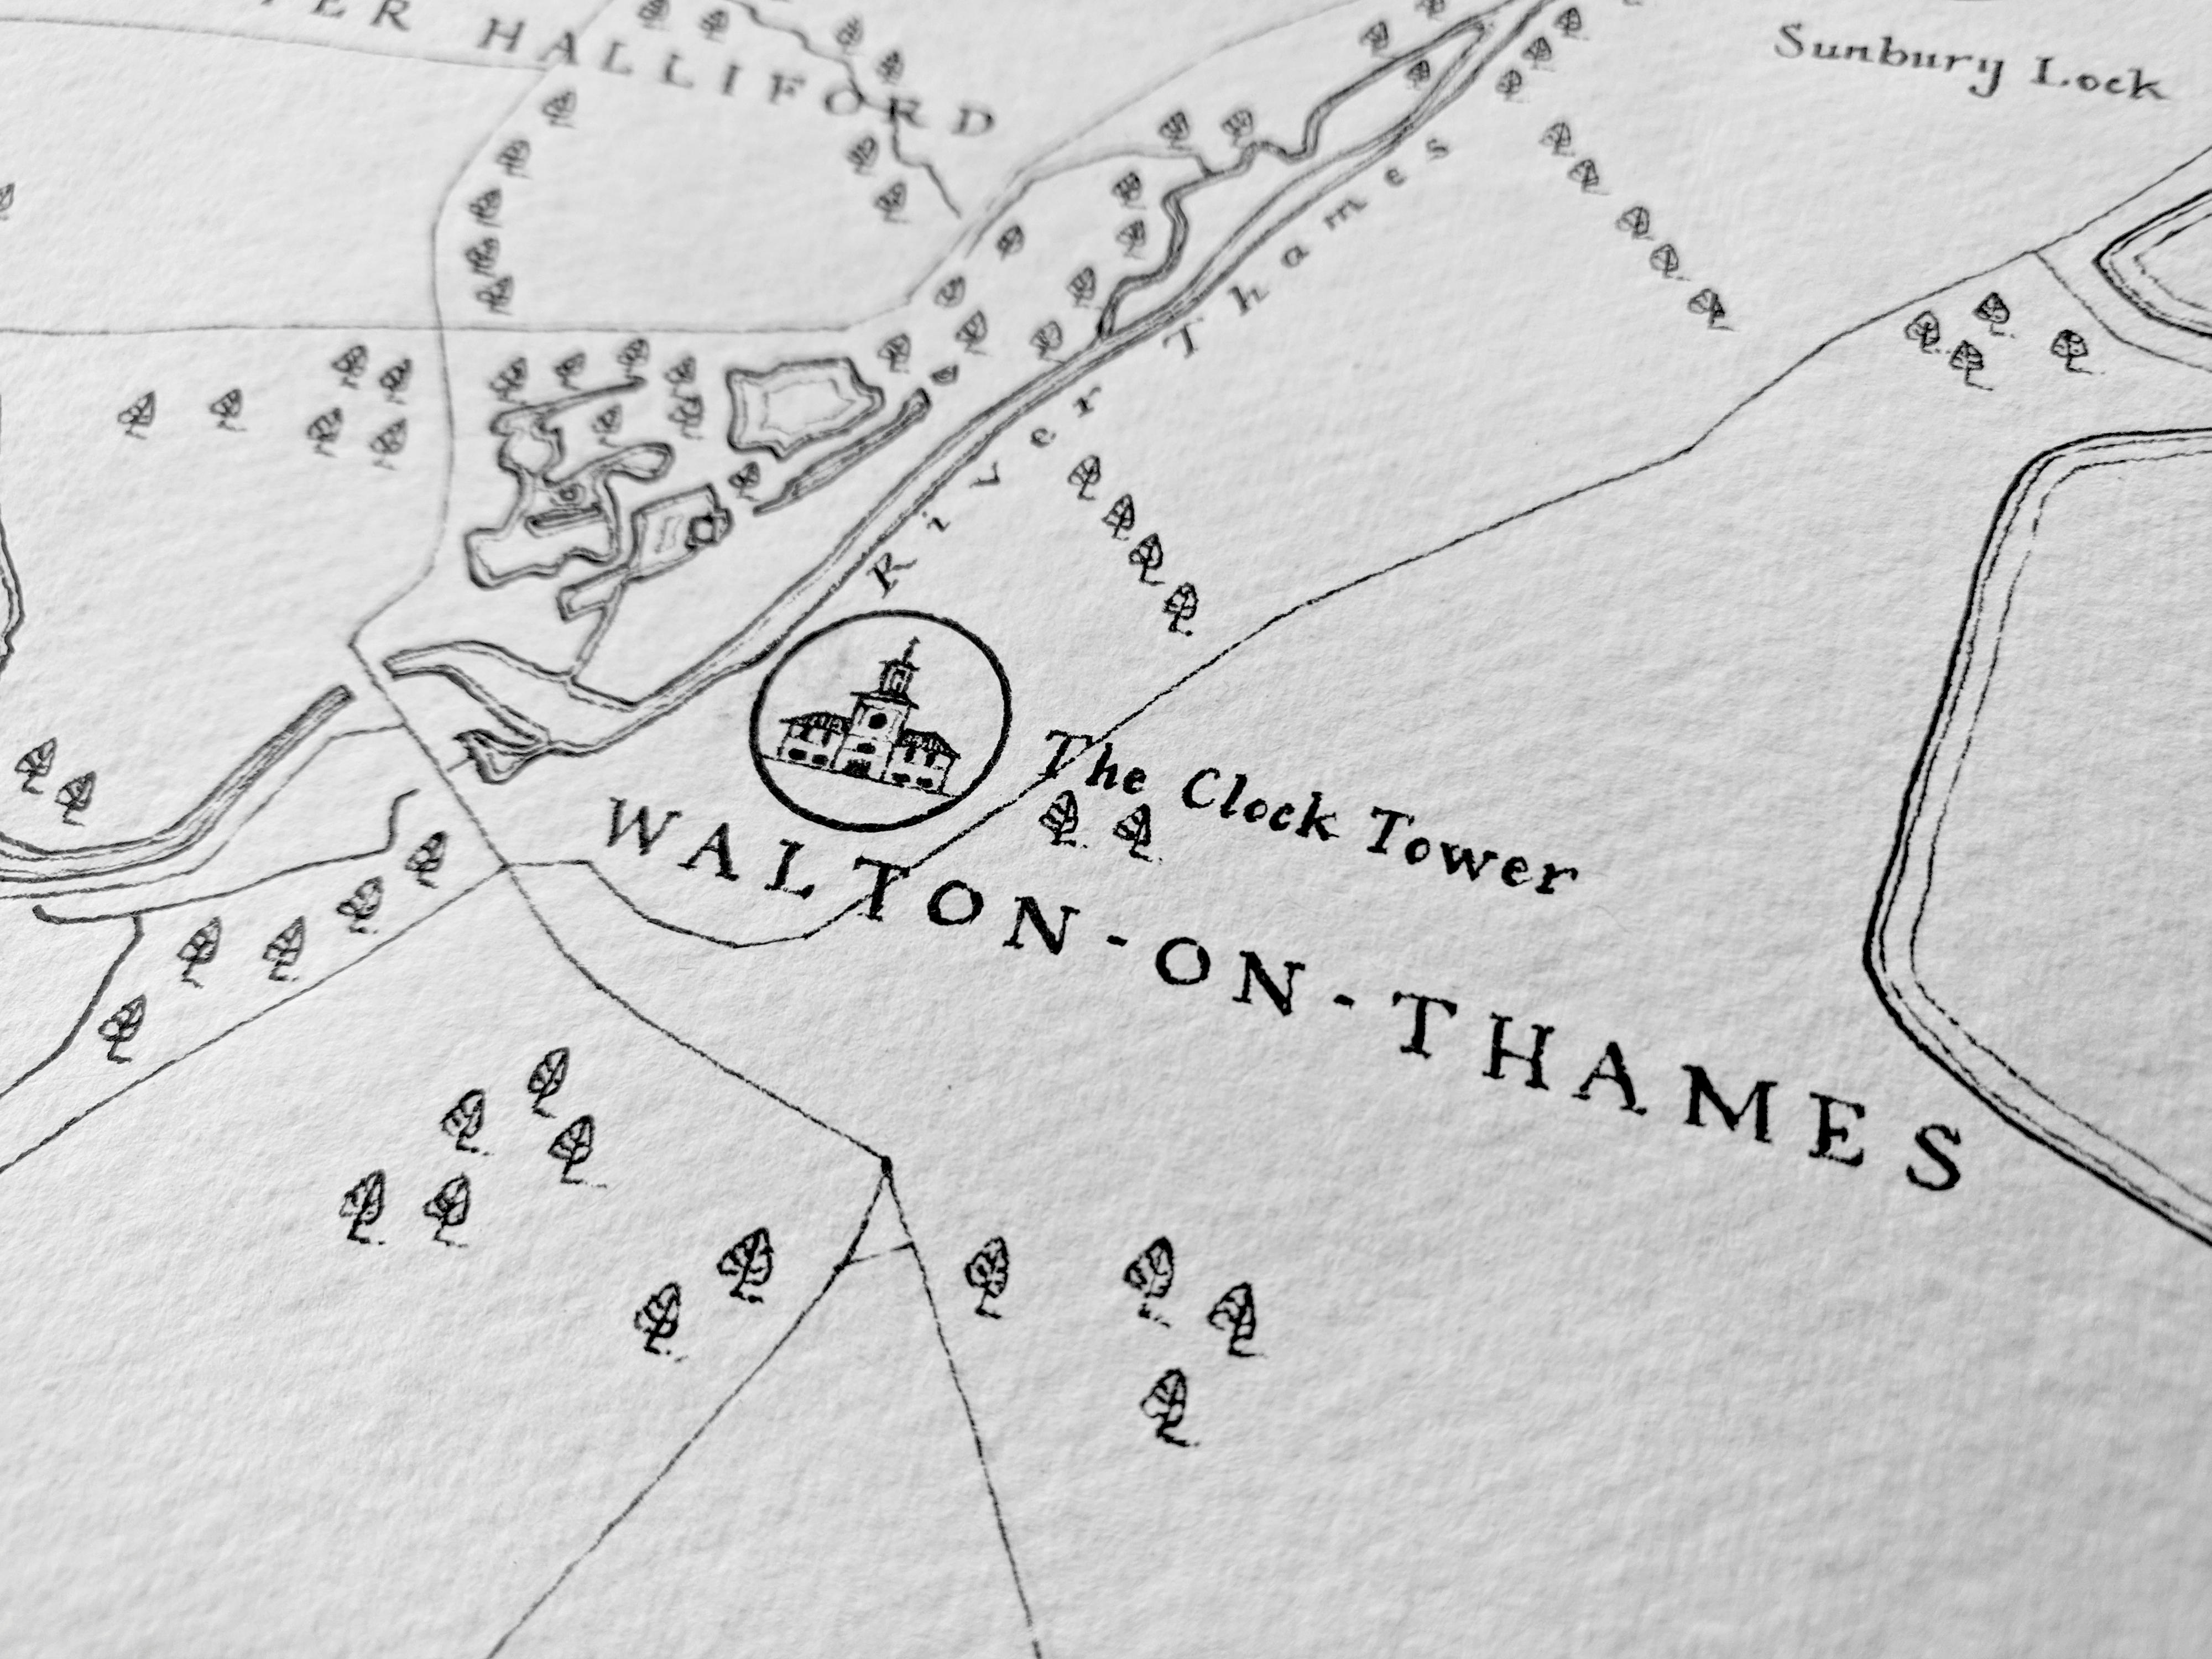 Map of Shepperton and surrounding areas, Greater London. Created in Owen Delaney